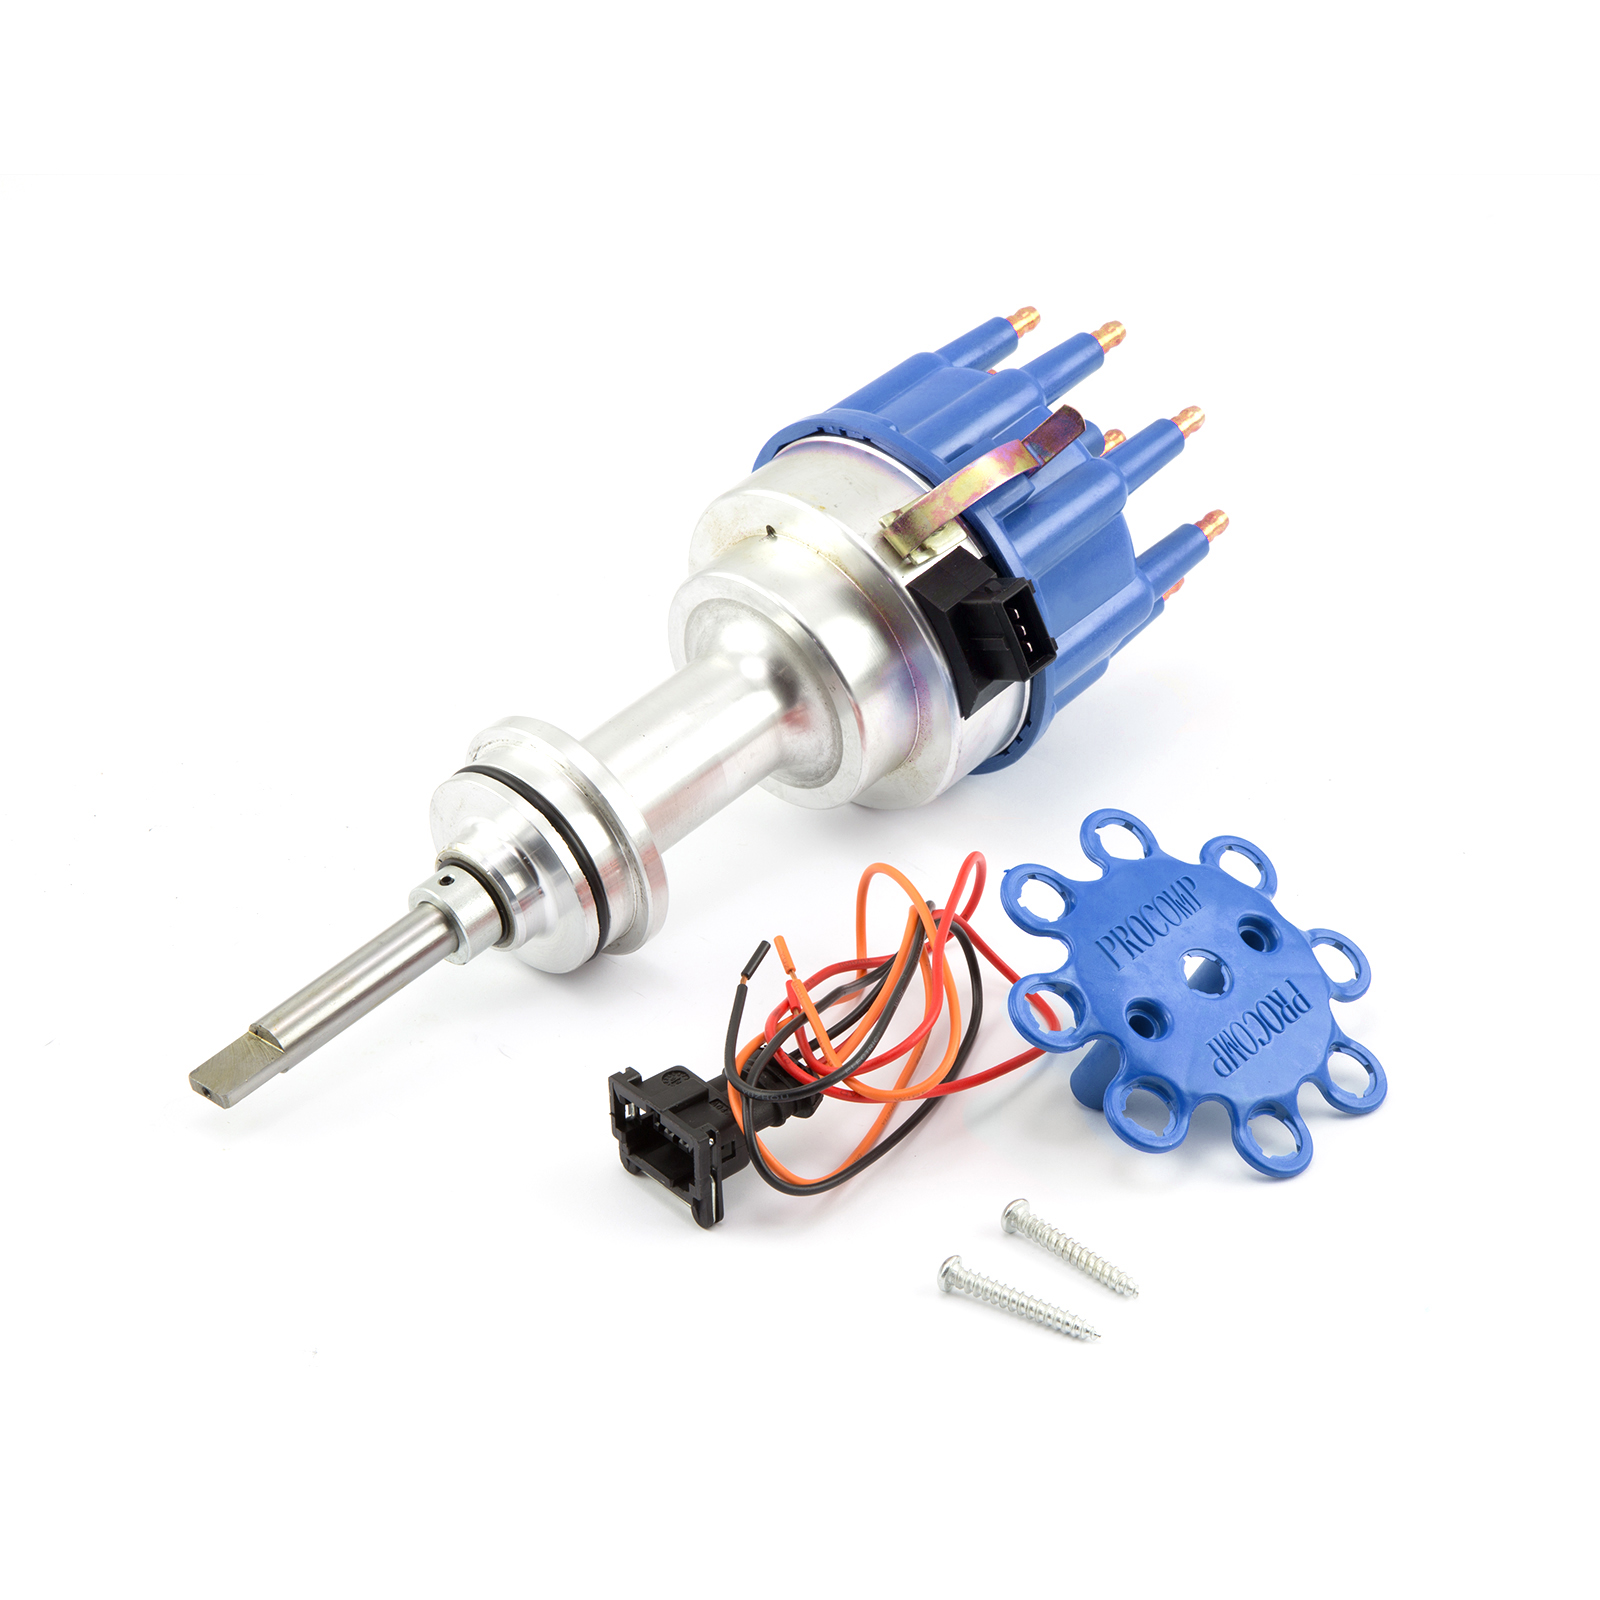 Mopar Chrysler SB 318 340 360 8020 Series Pro Billet Ready to Run Distributor [Blue]